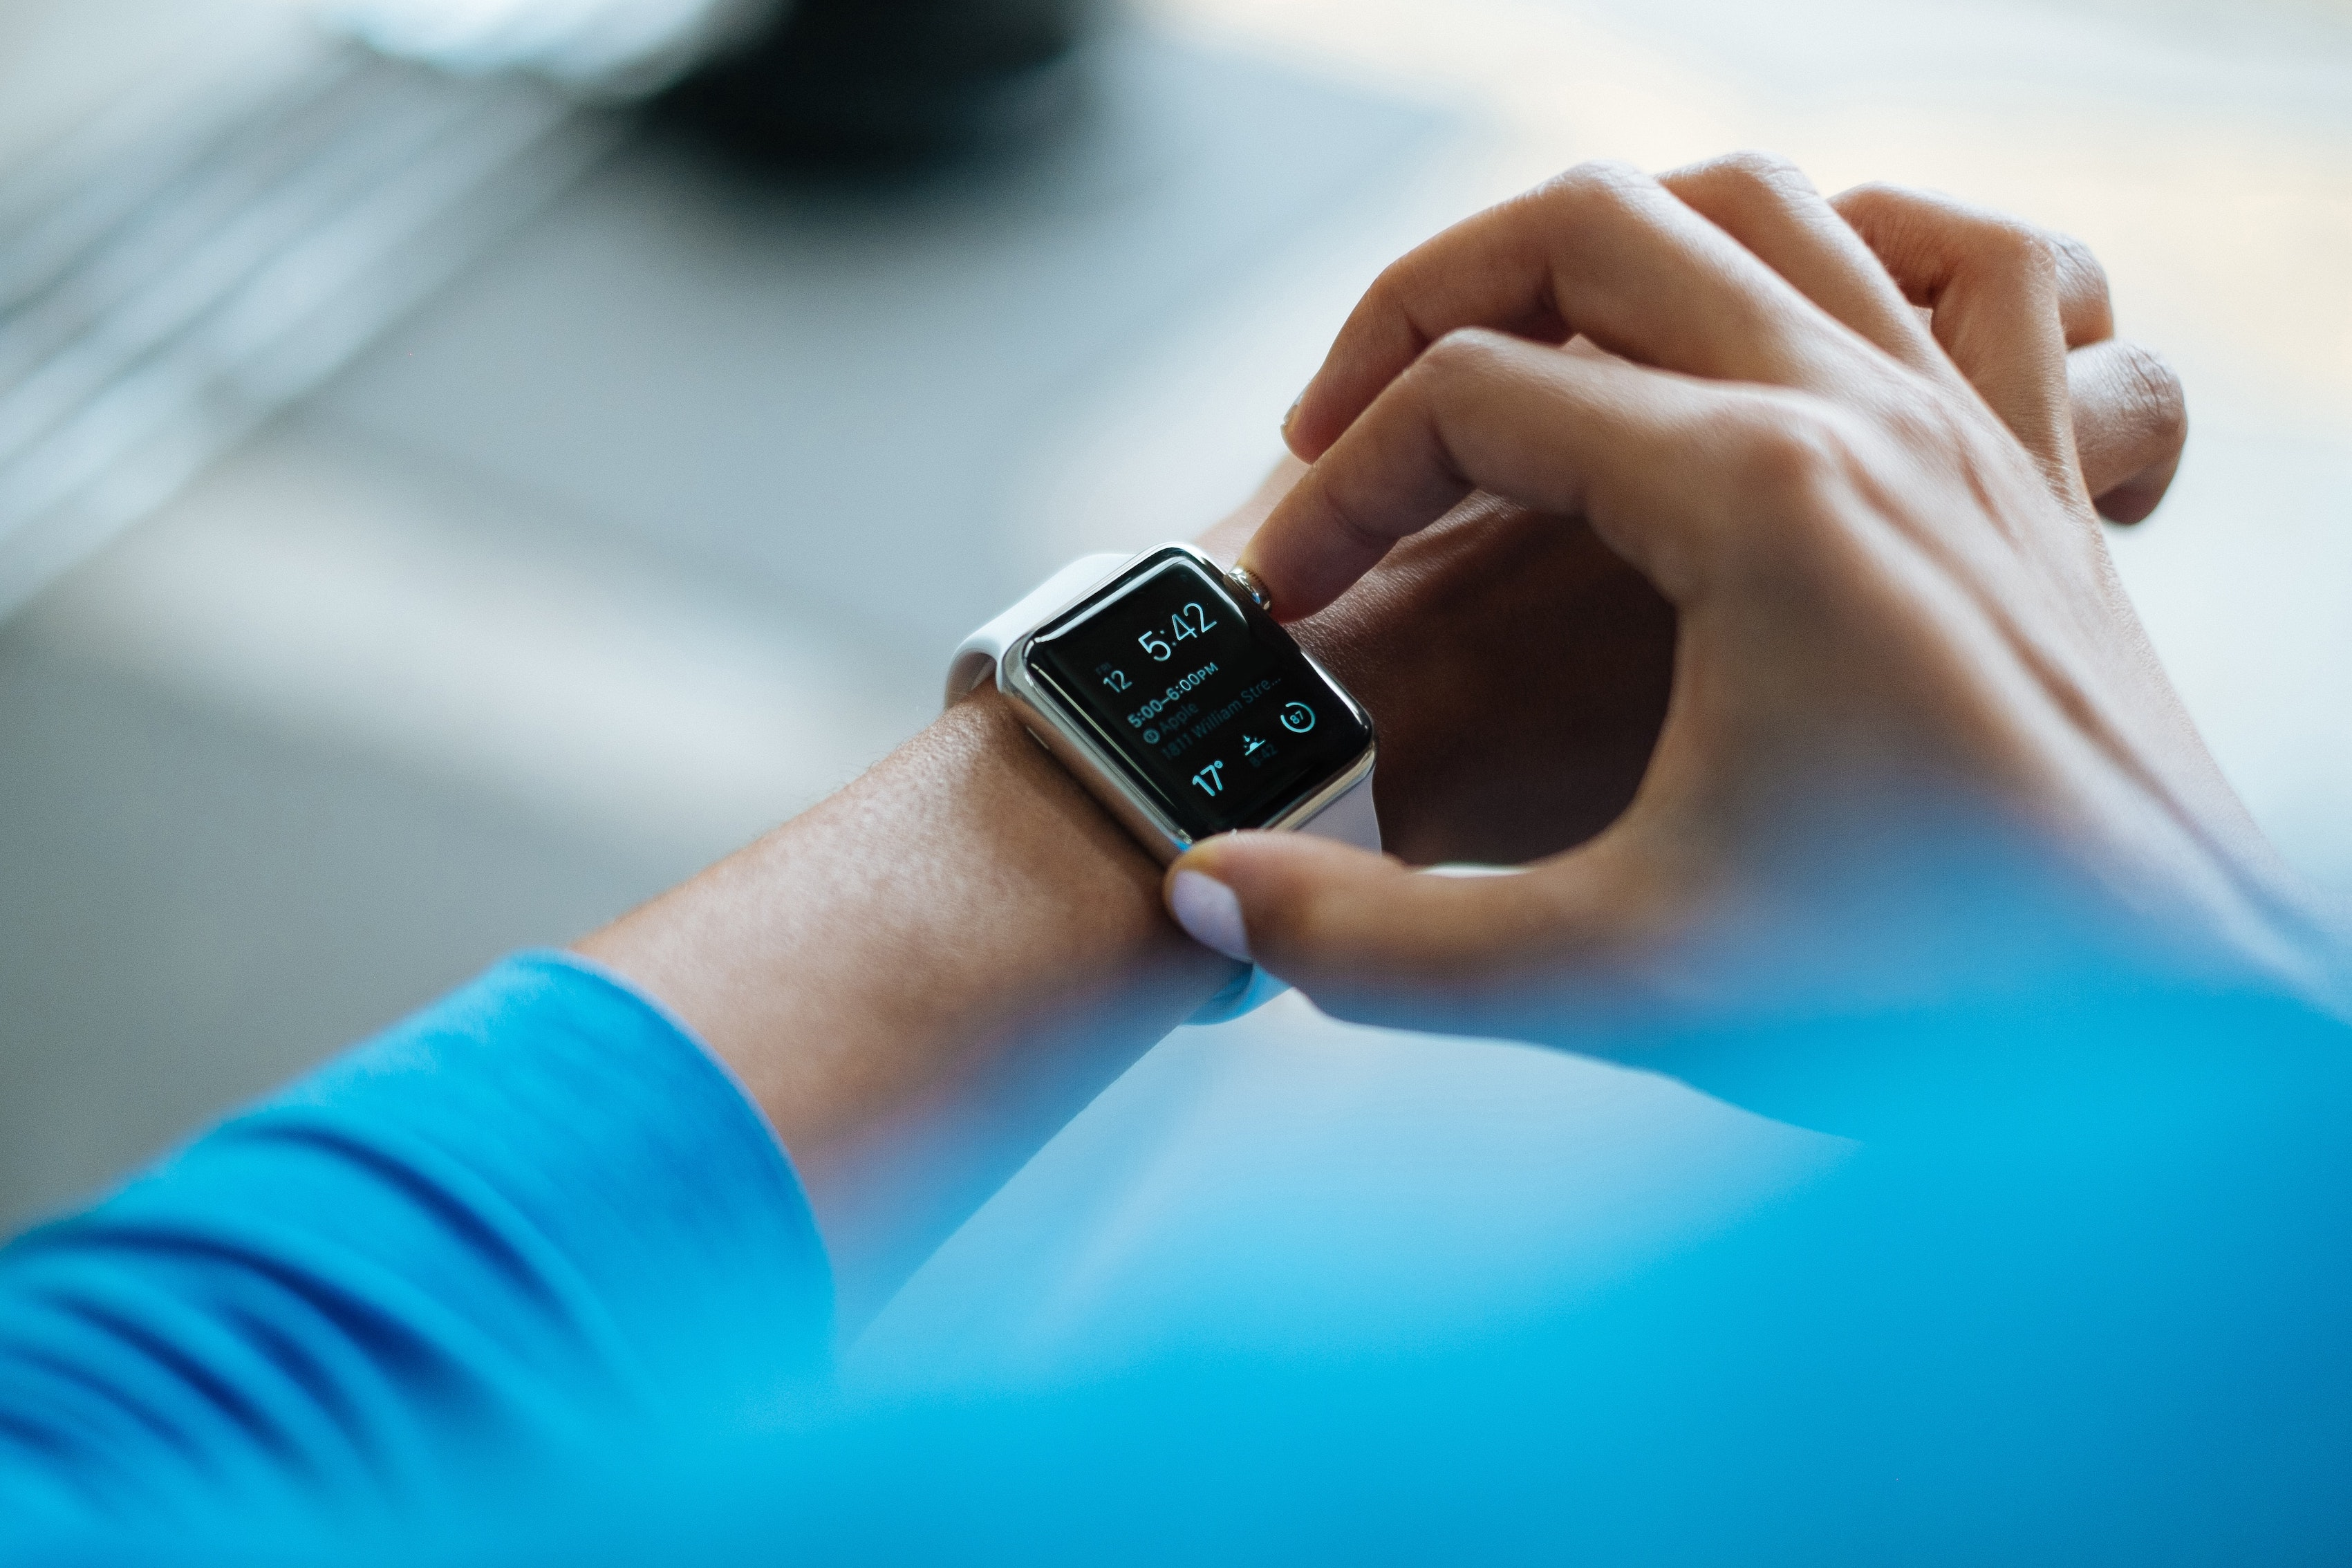 7 Health and Fitness Gadgets to Step up Your Physical Game